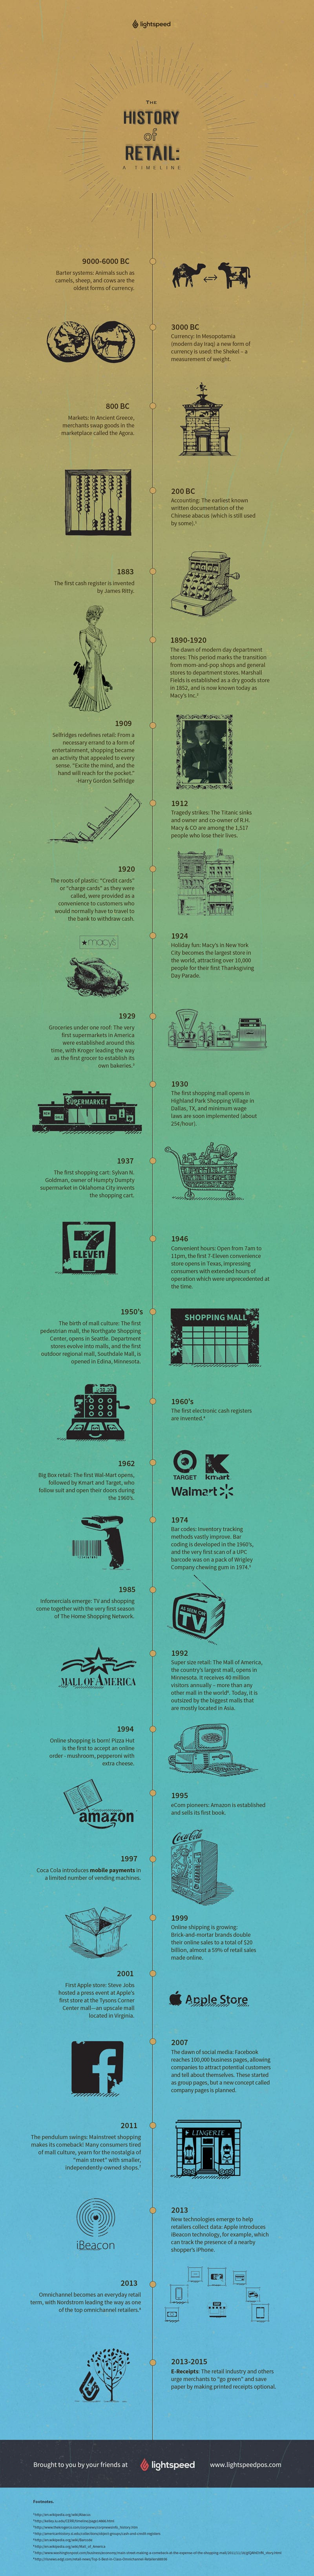 history of retail Our history since the first walmart store opened in 1962 in rogers  leading the future of retail walmart continues to pave the way in retail innovation.